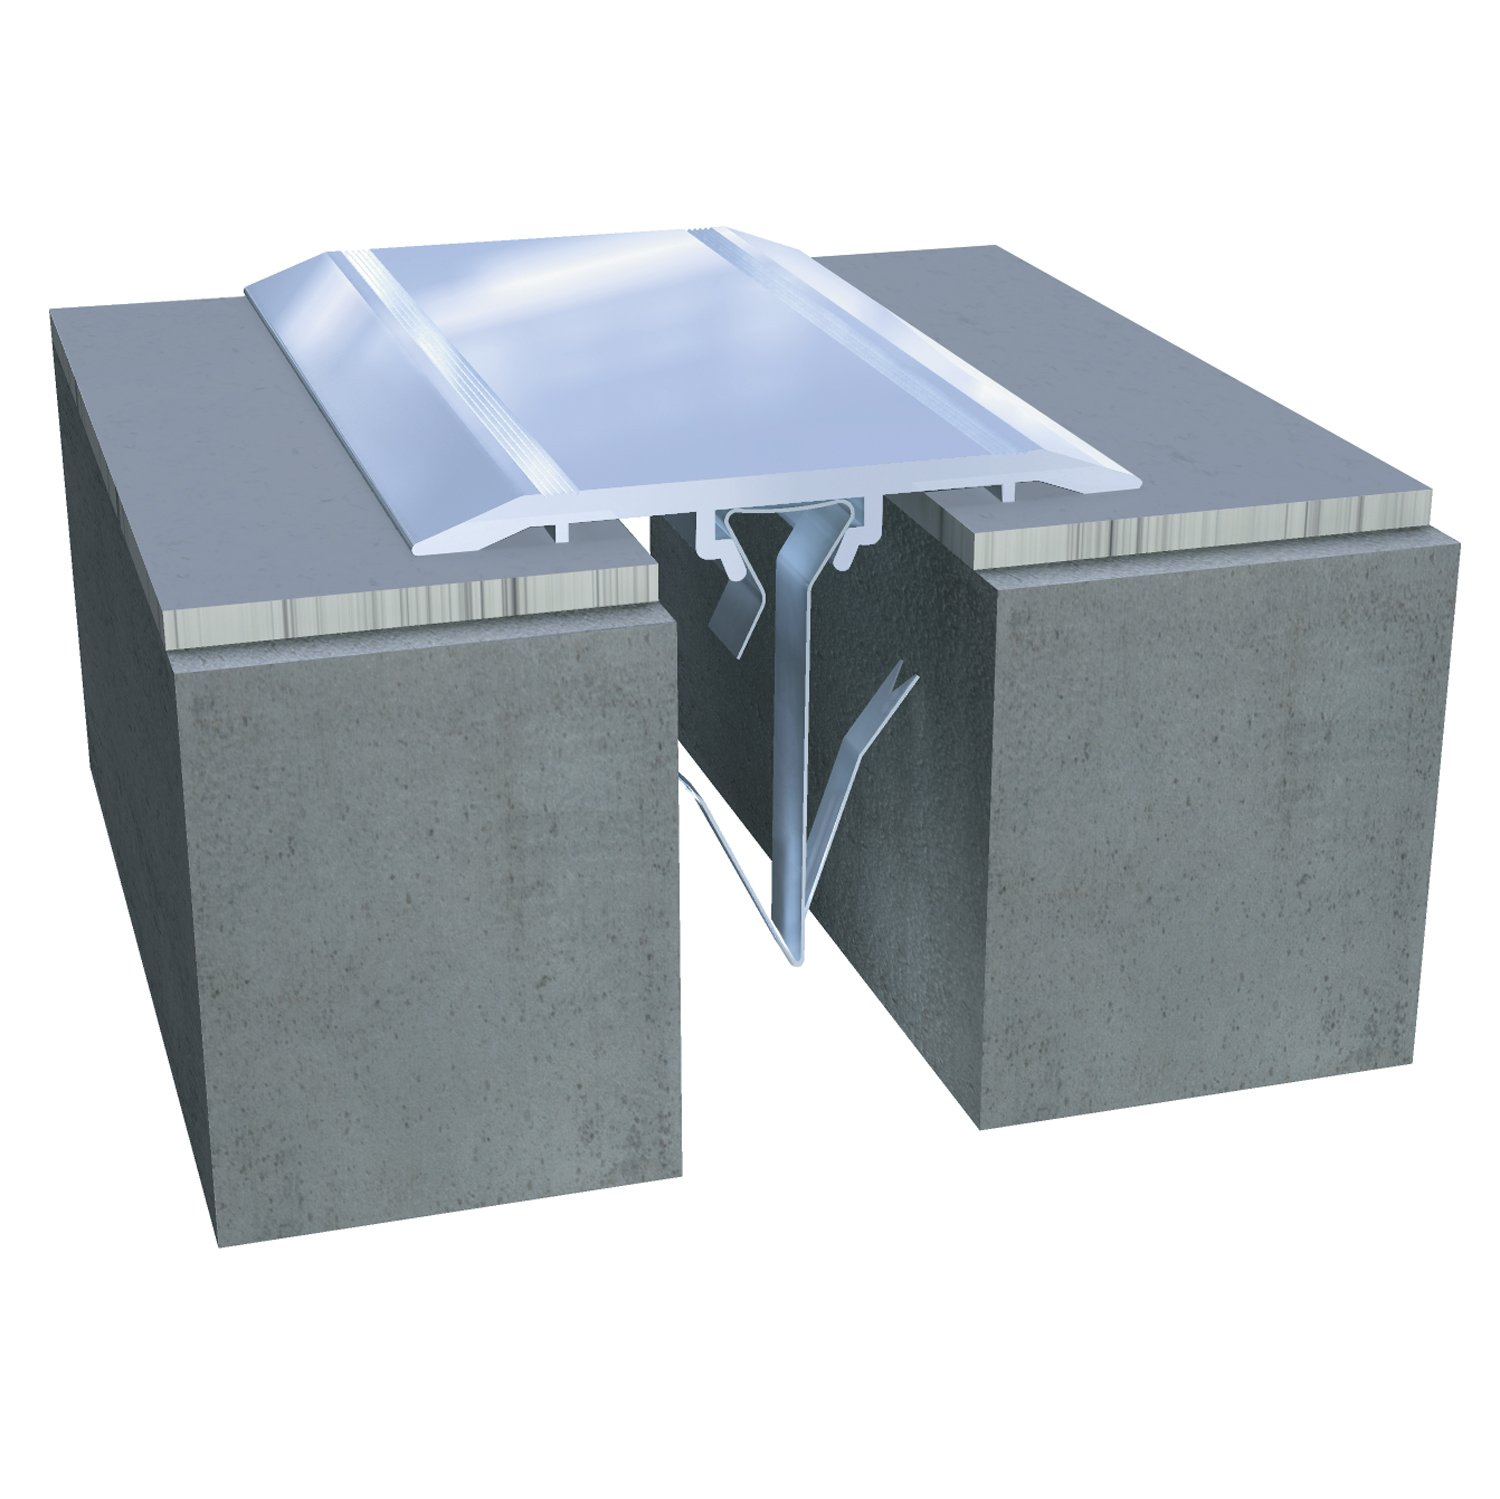 804 Series Floor System Expansion Joints